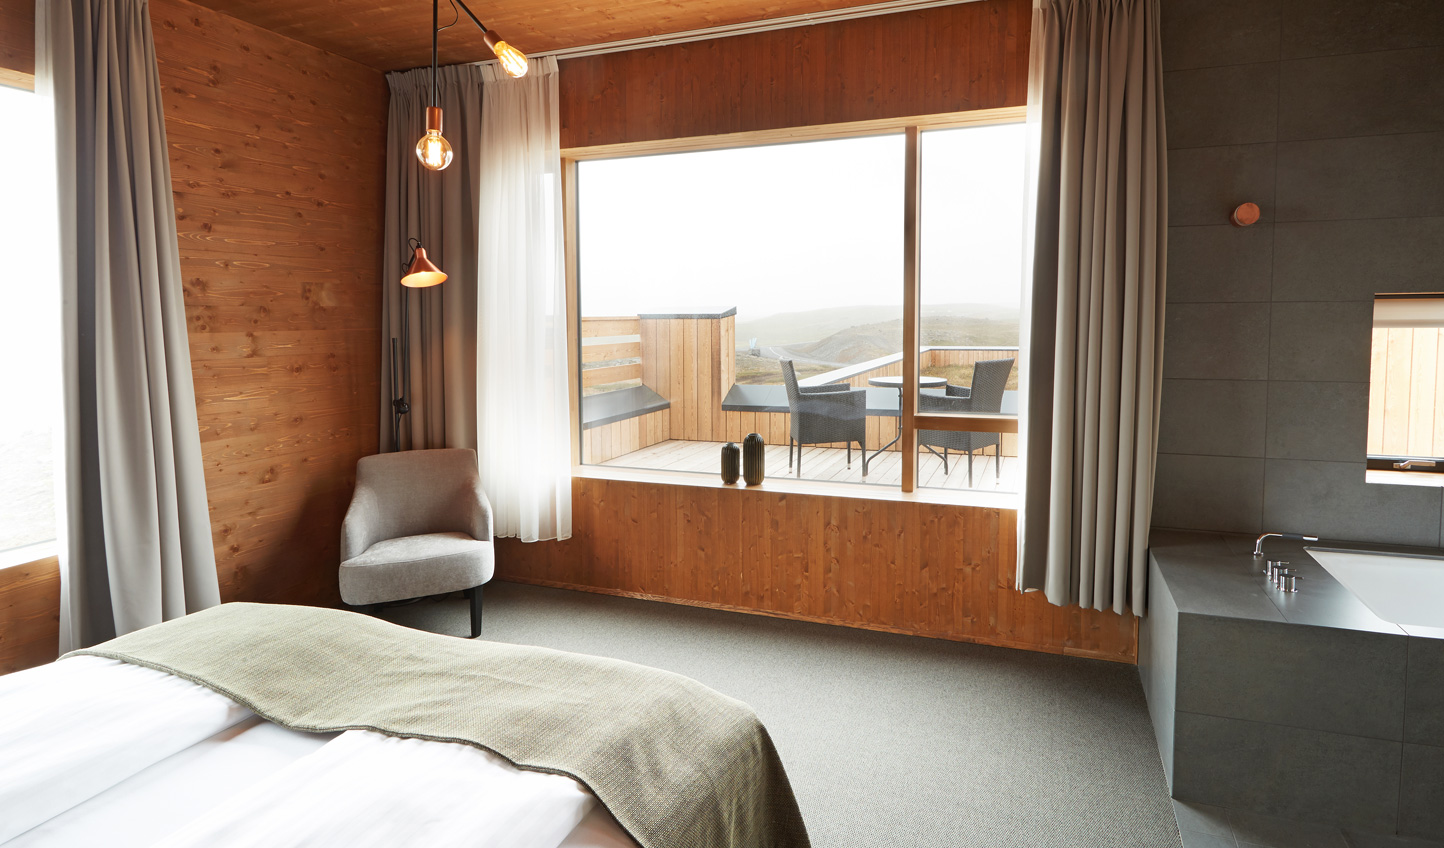 Wake up to views across the Myvatn landscapes